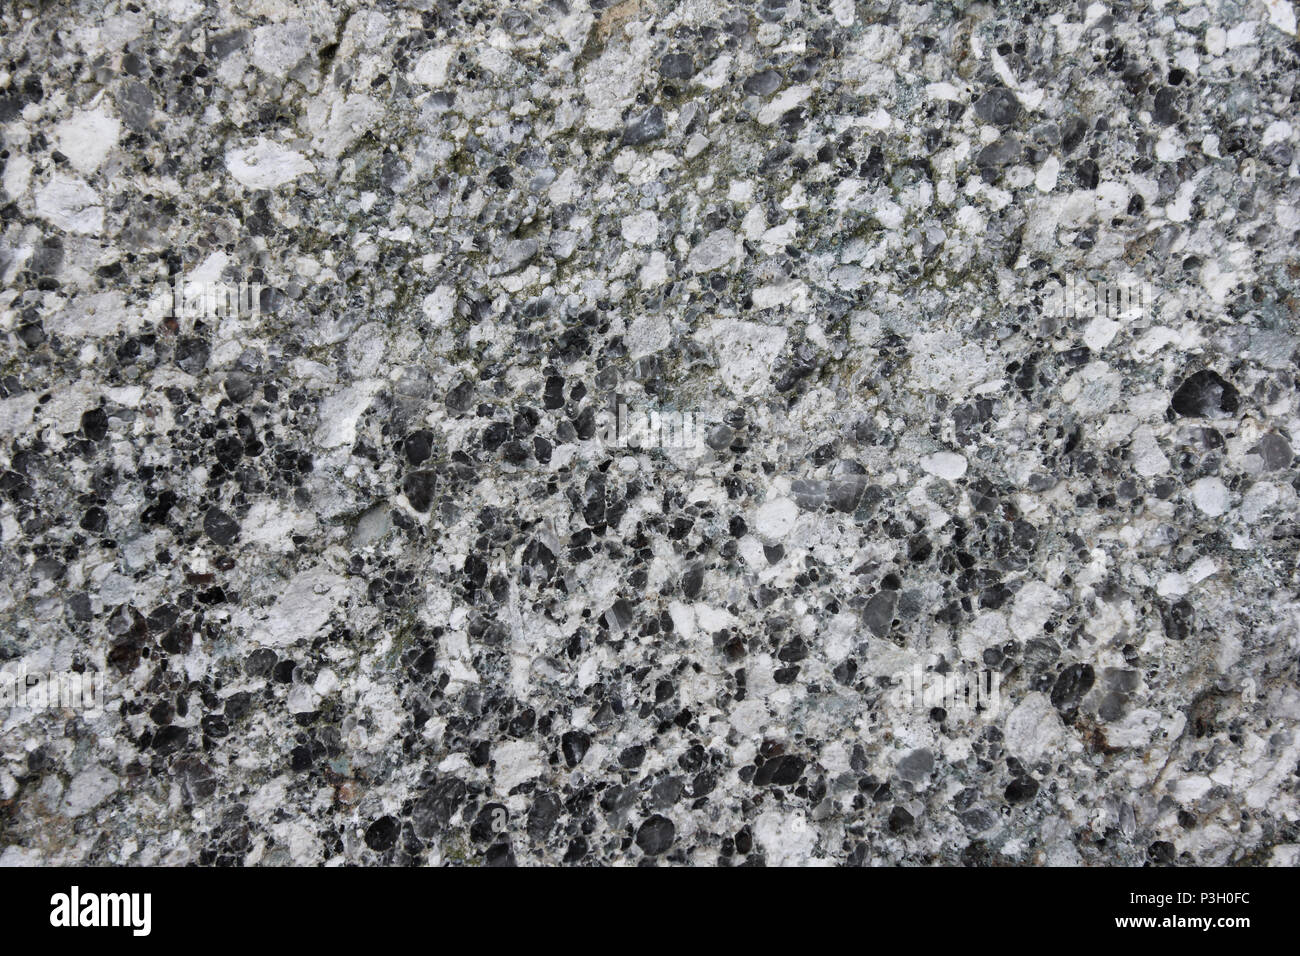 Andesite porphyry - Stock Image